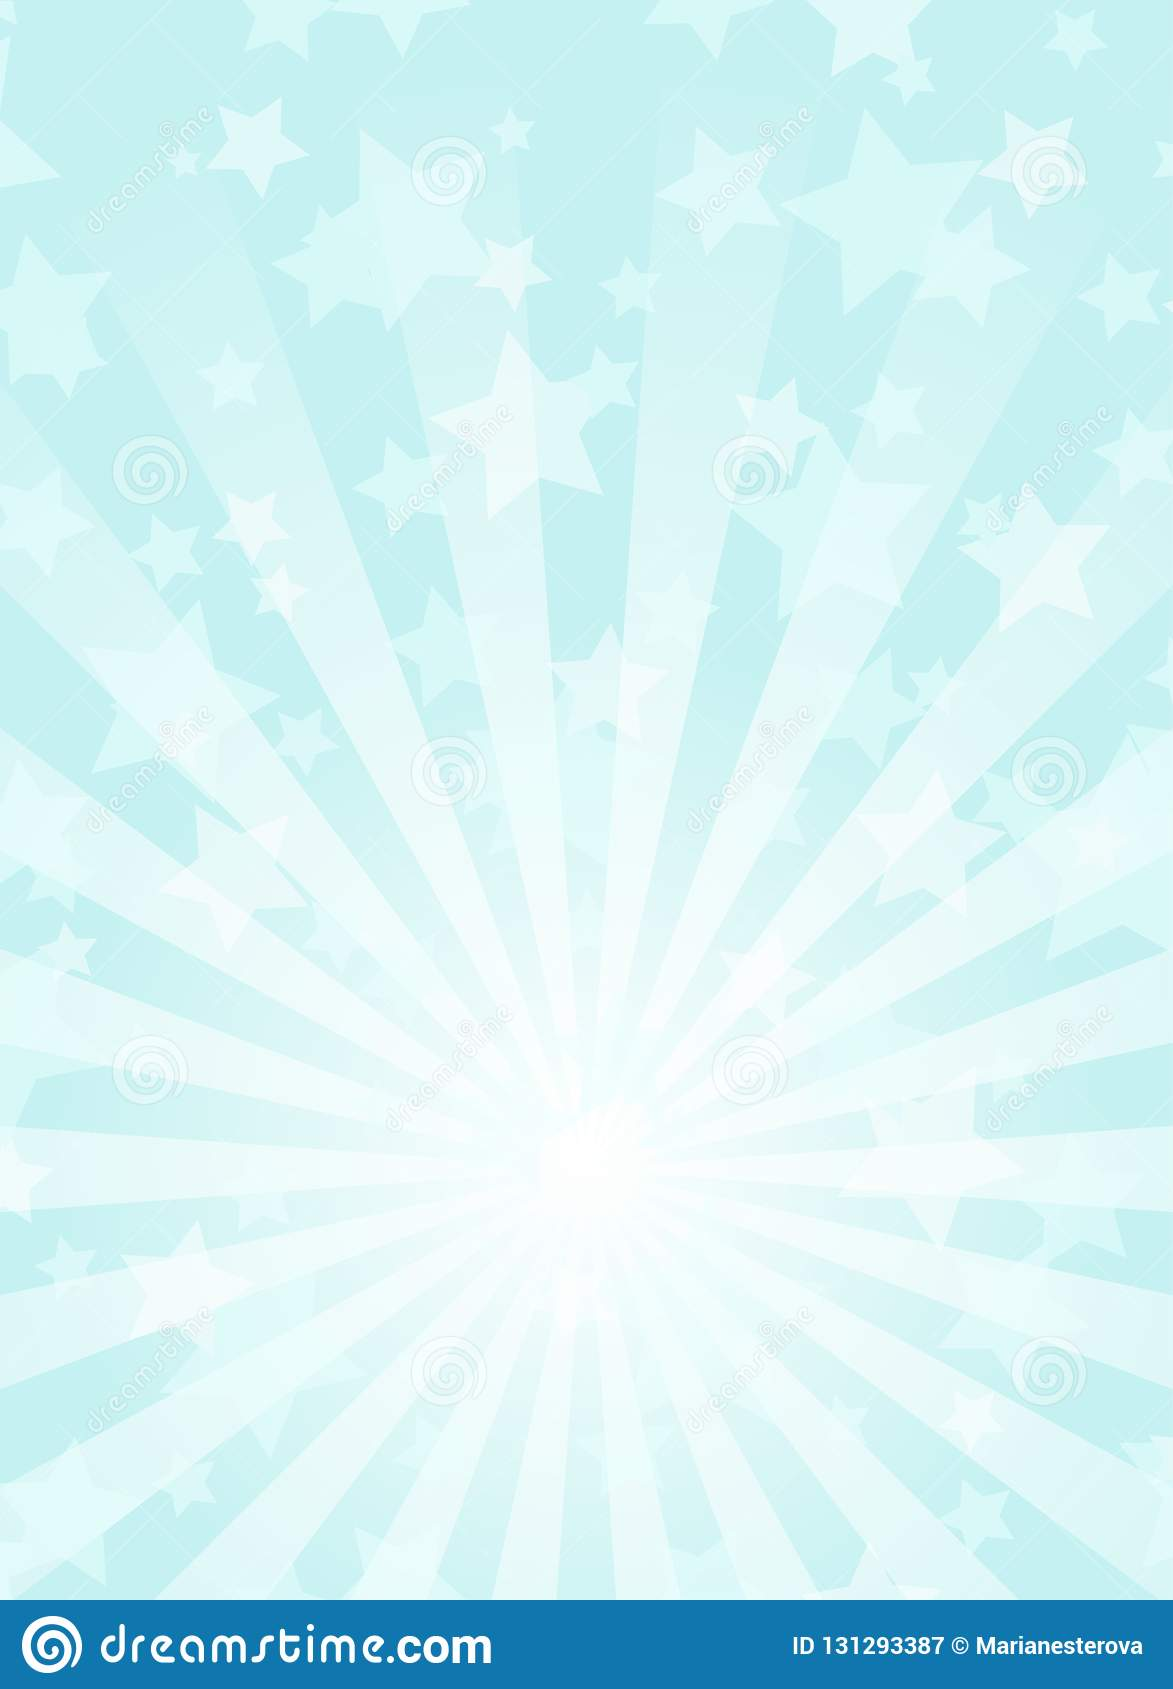 Sunlight vertical background. Powder blue color burst background with white highlight.